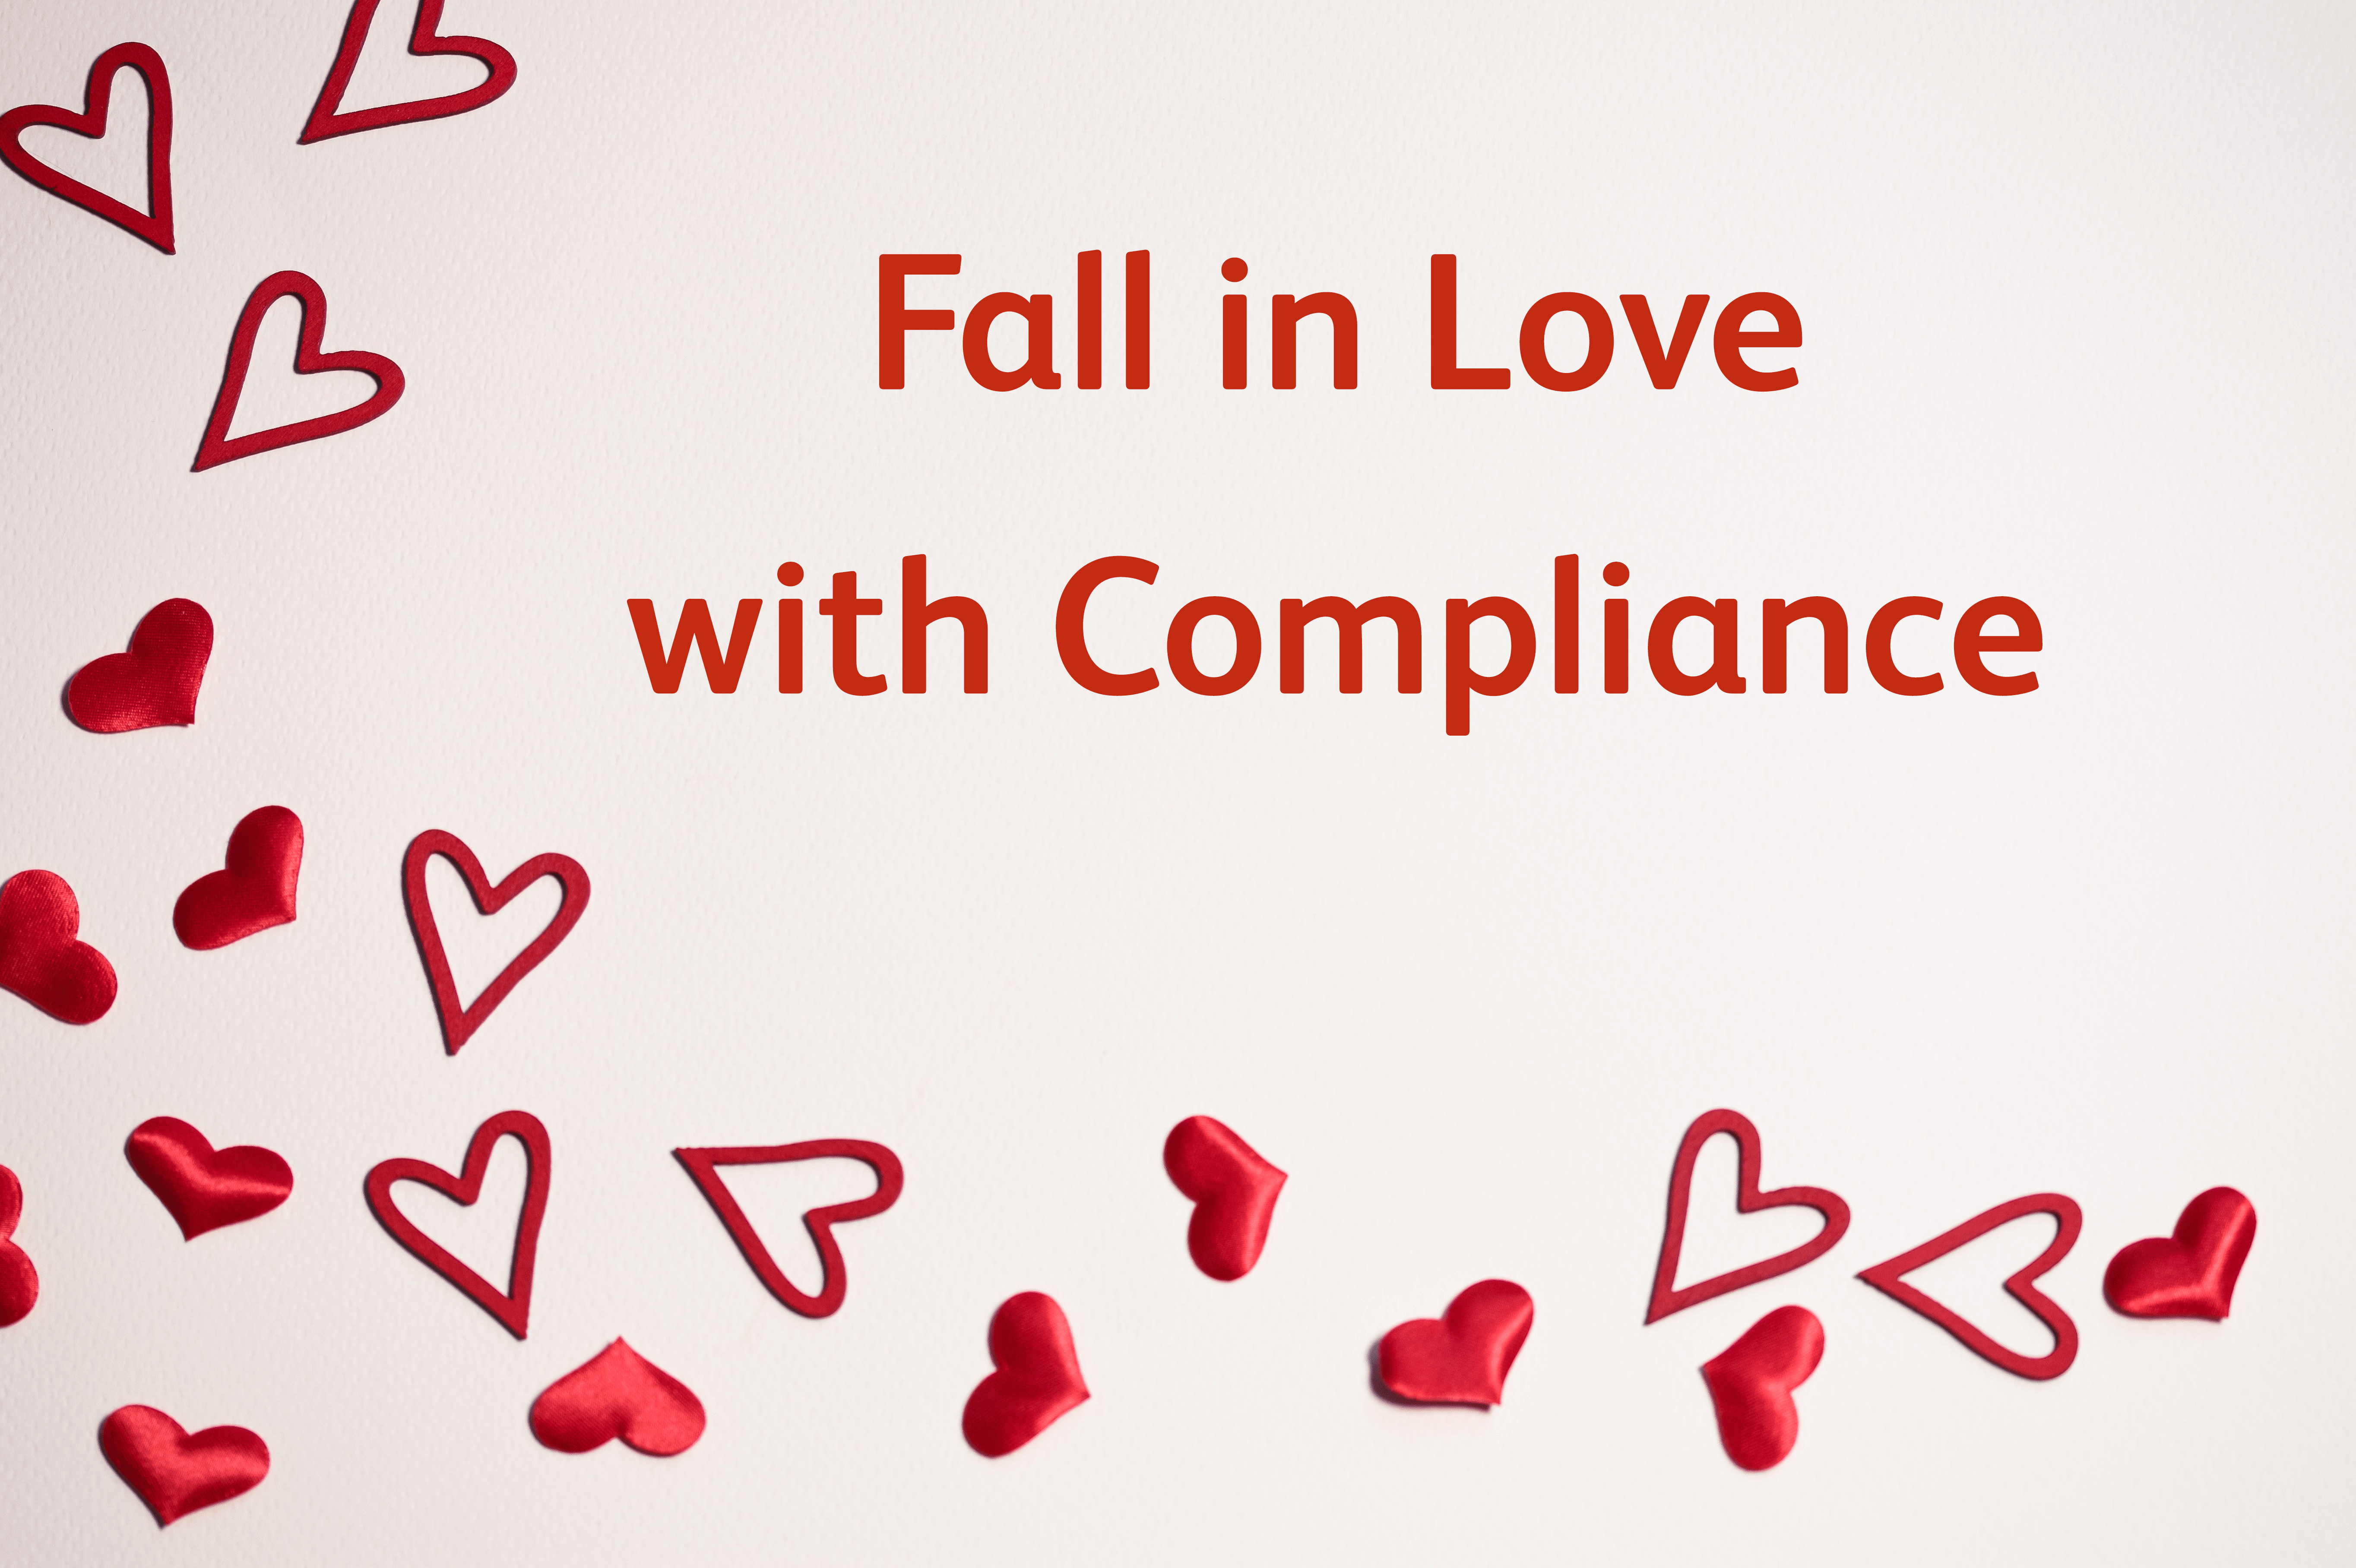 Fall in love with compliance